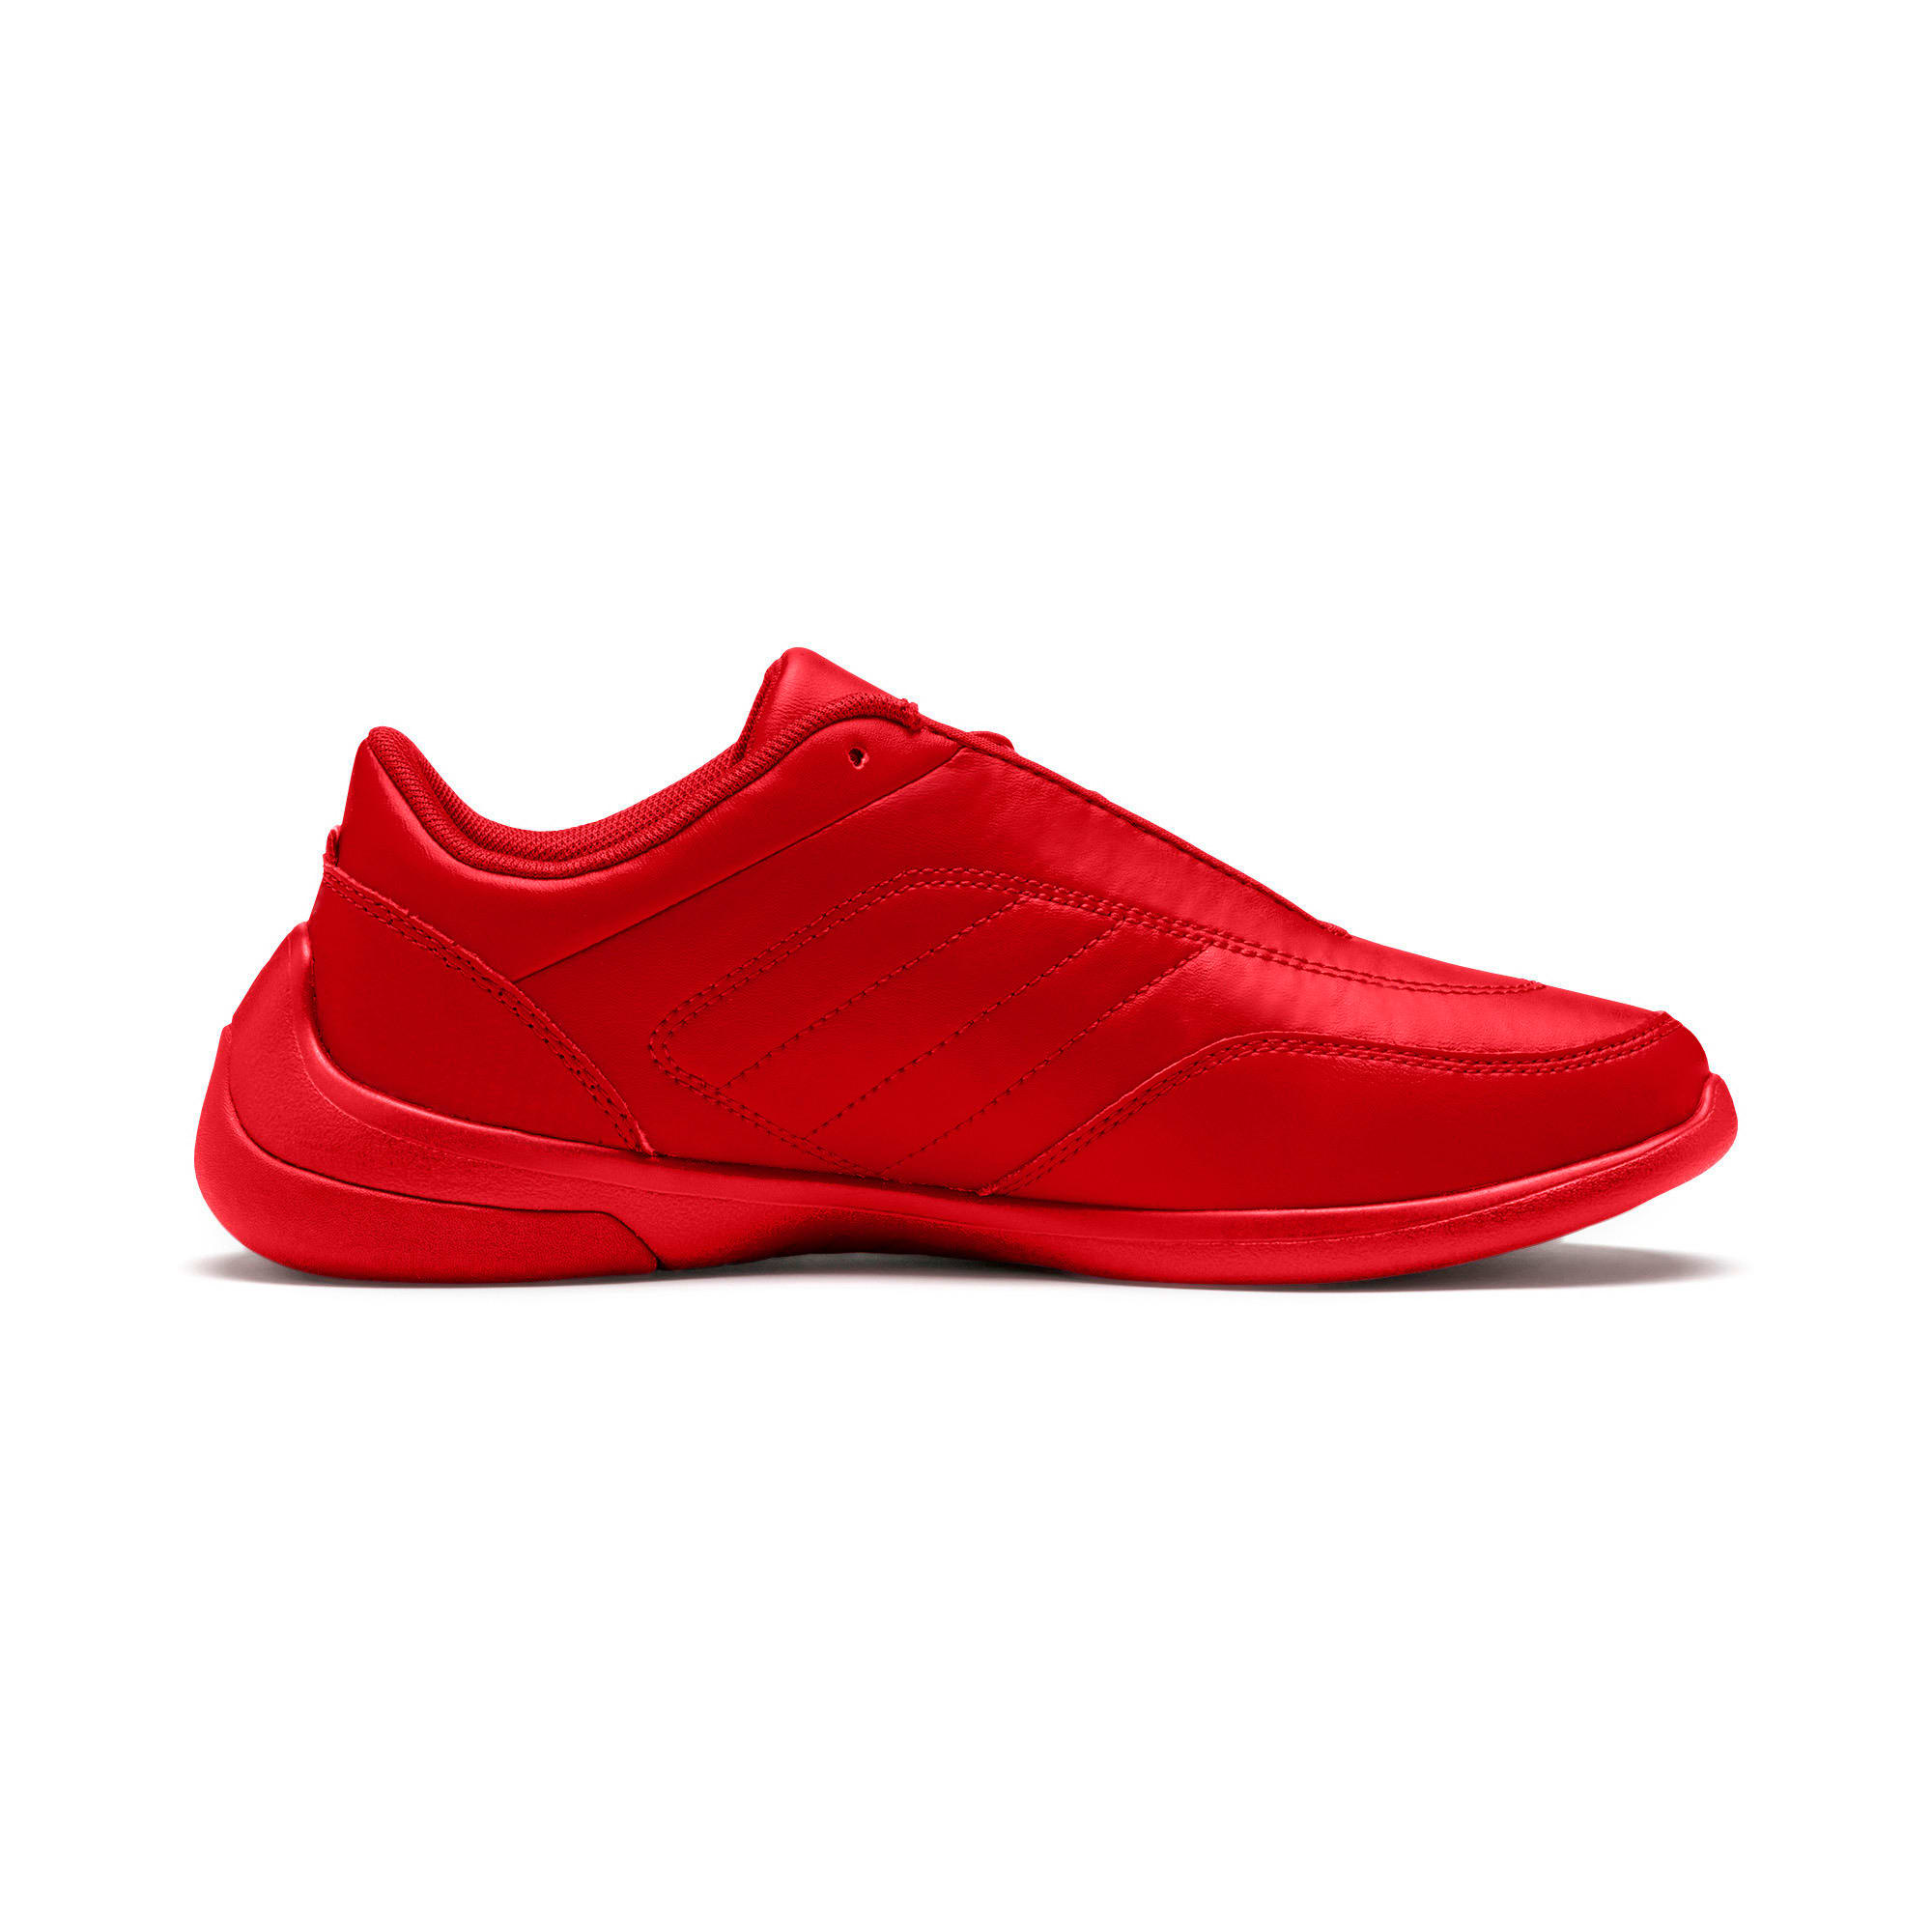 Thumbnail 5 of Ferrari Kart Cat III Youth Trainers, Rosso Corsa-Wht-Rosso Corsa, medium